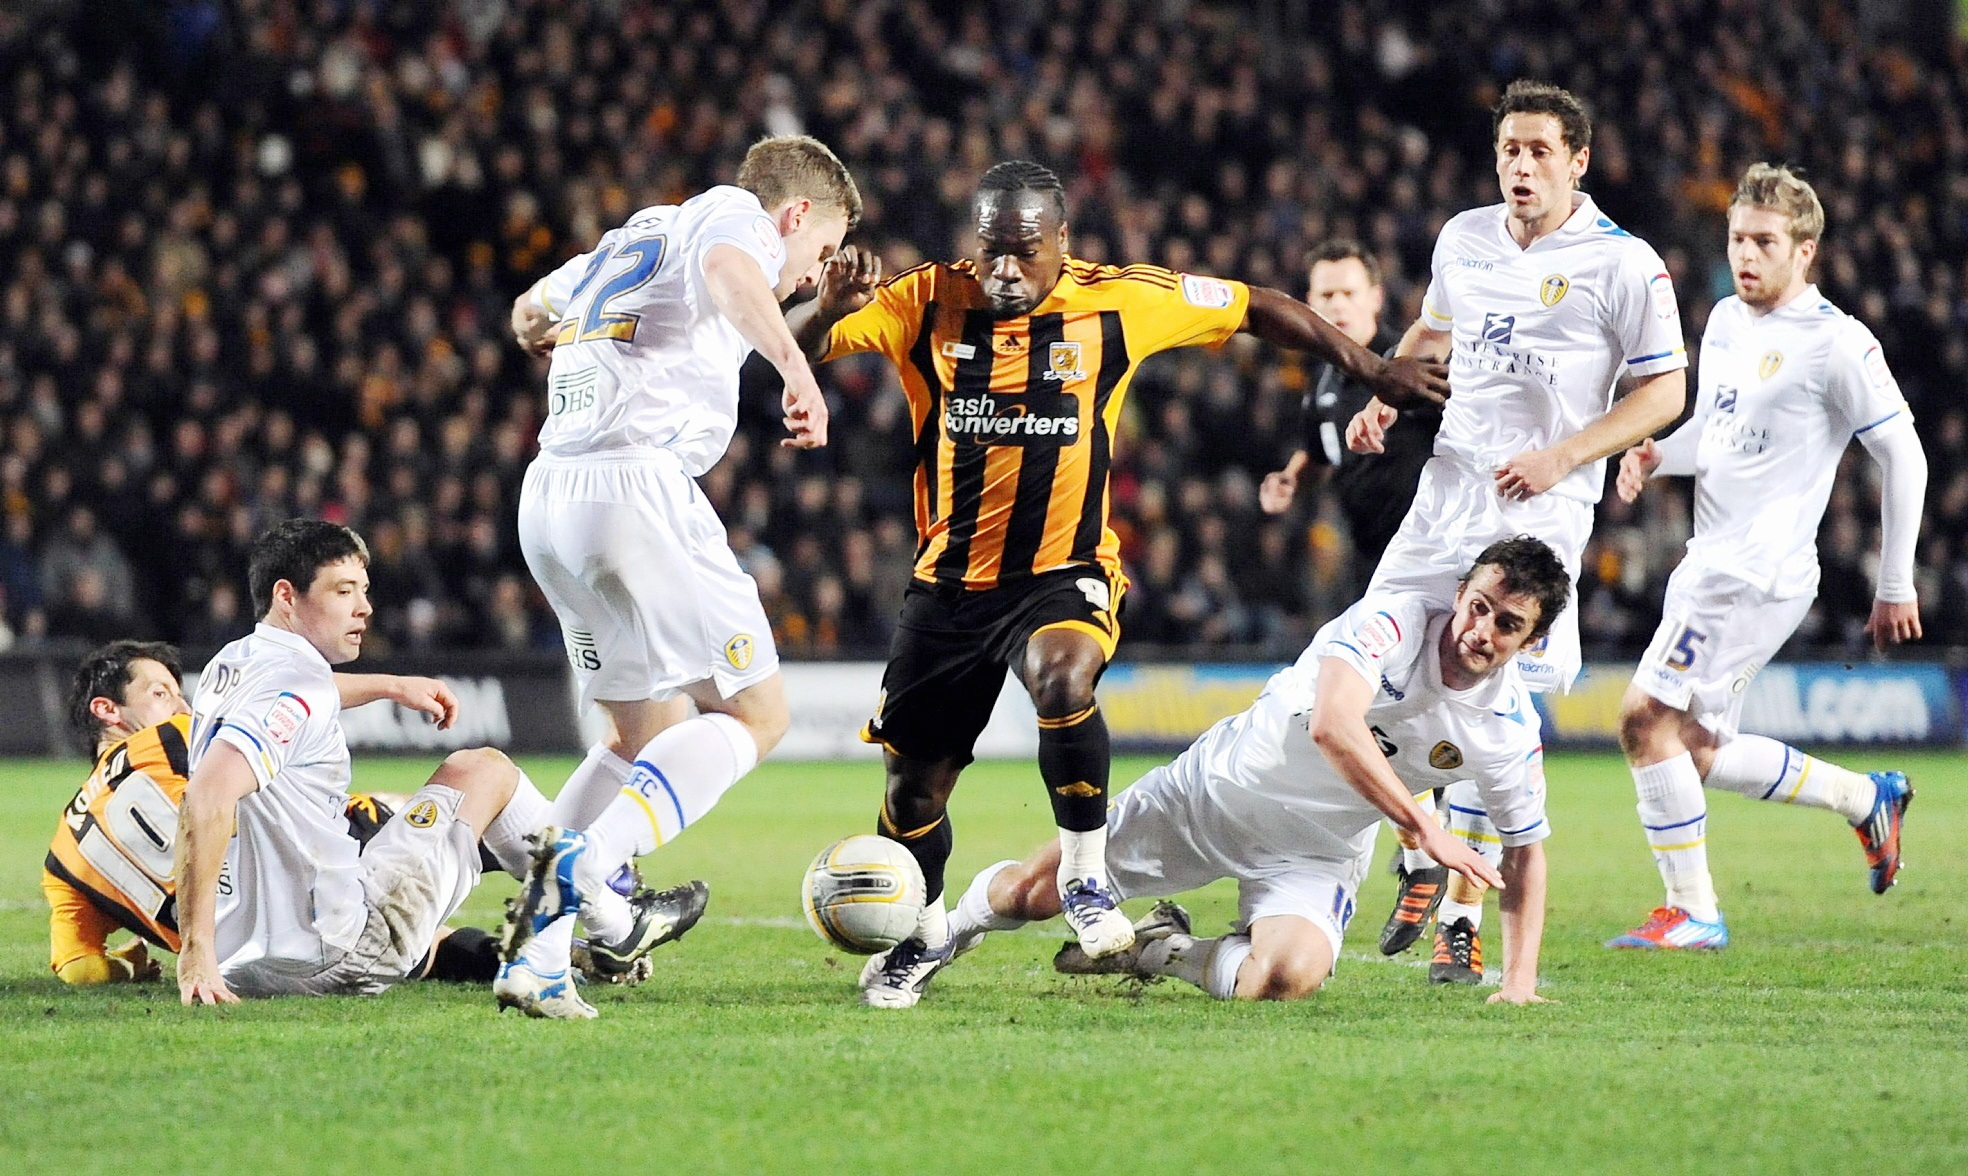 Aaron McLean in action for Hull